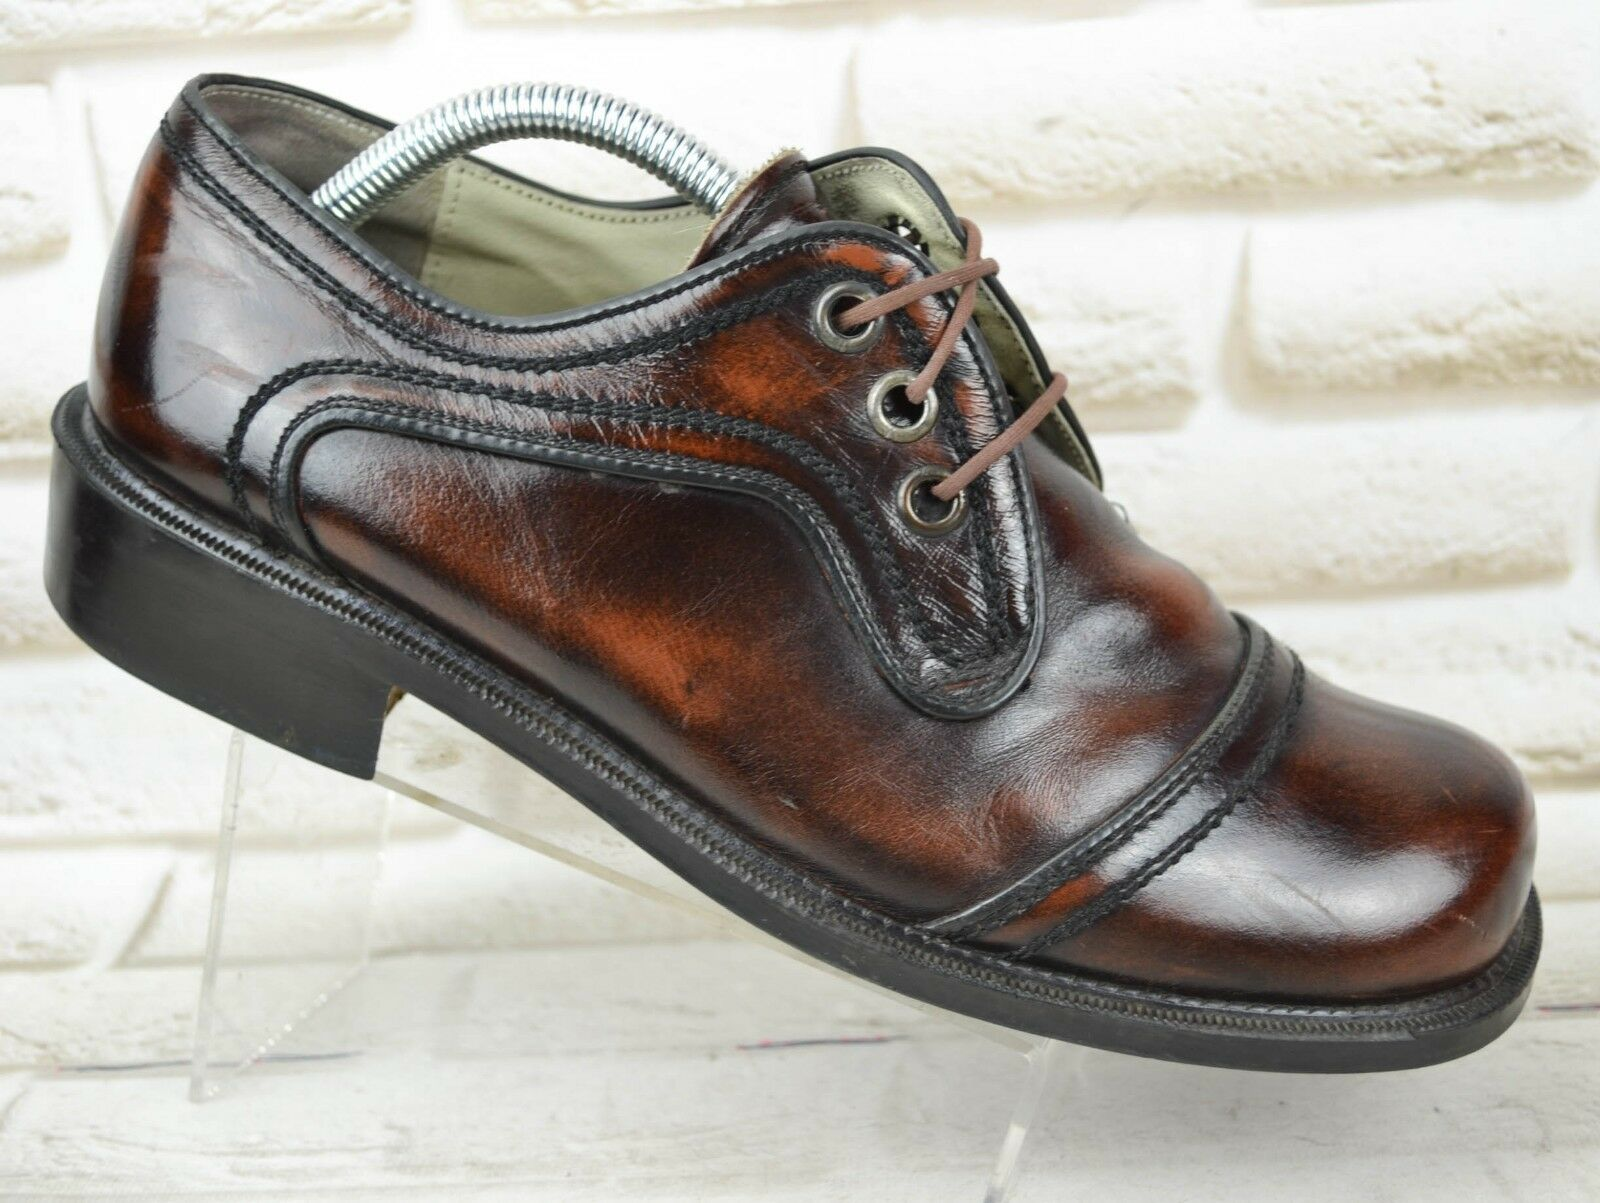 SANDERS Mens Brown Leather Formal shoes Low Boots Made PORTUGAL Size 8 EU